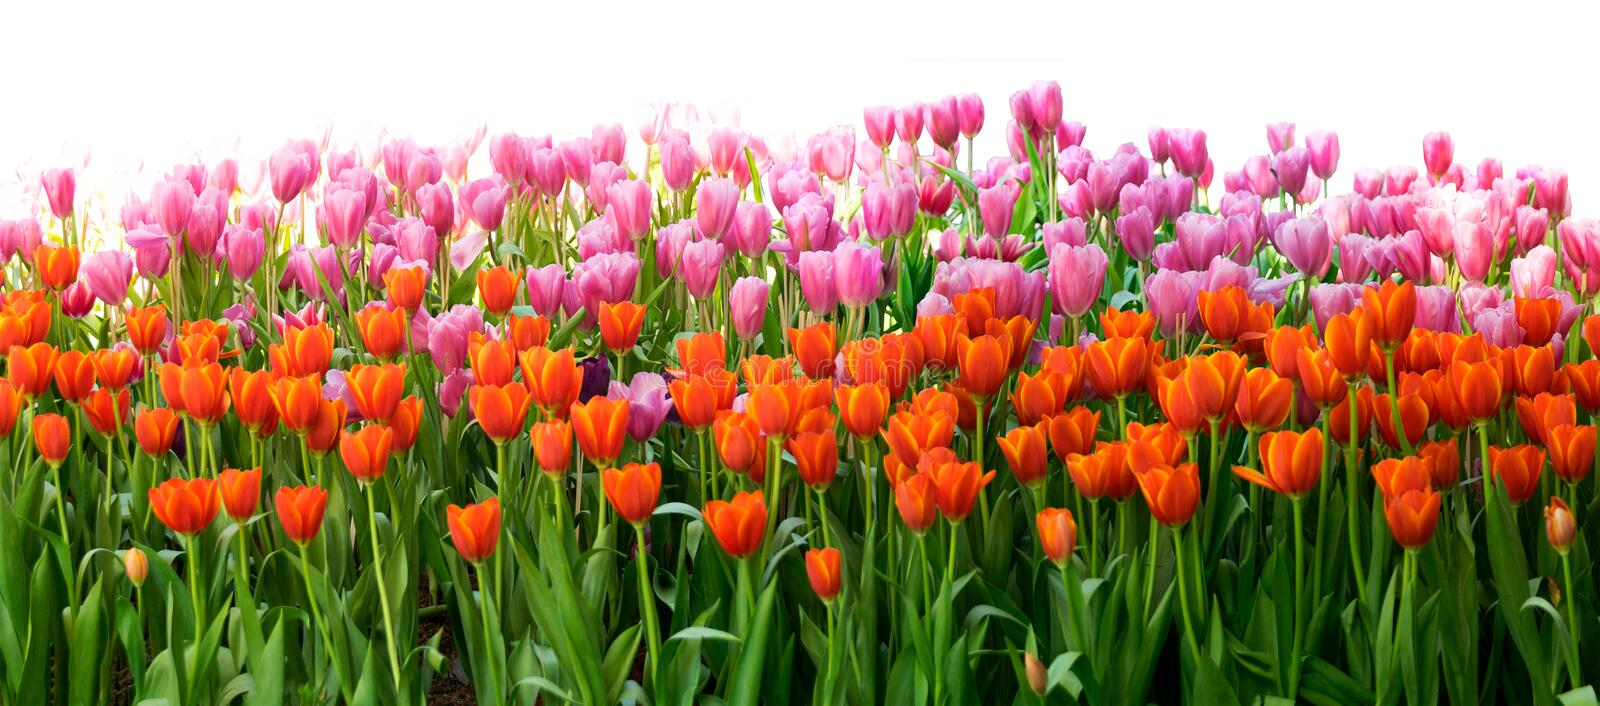 Orange and pink Tulips flower in the garden isolate on white background stock photo